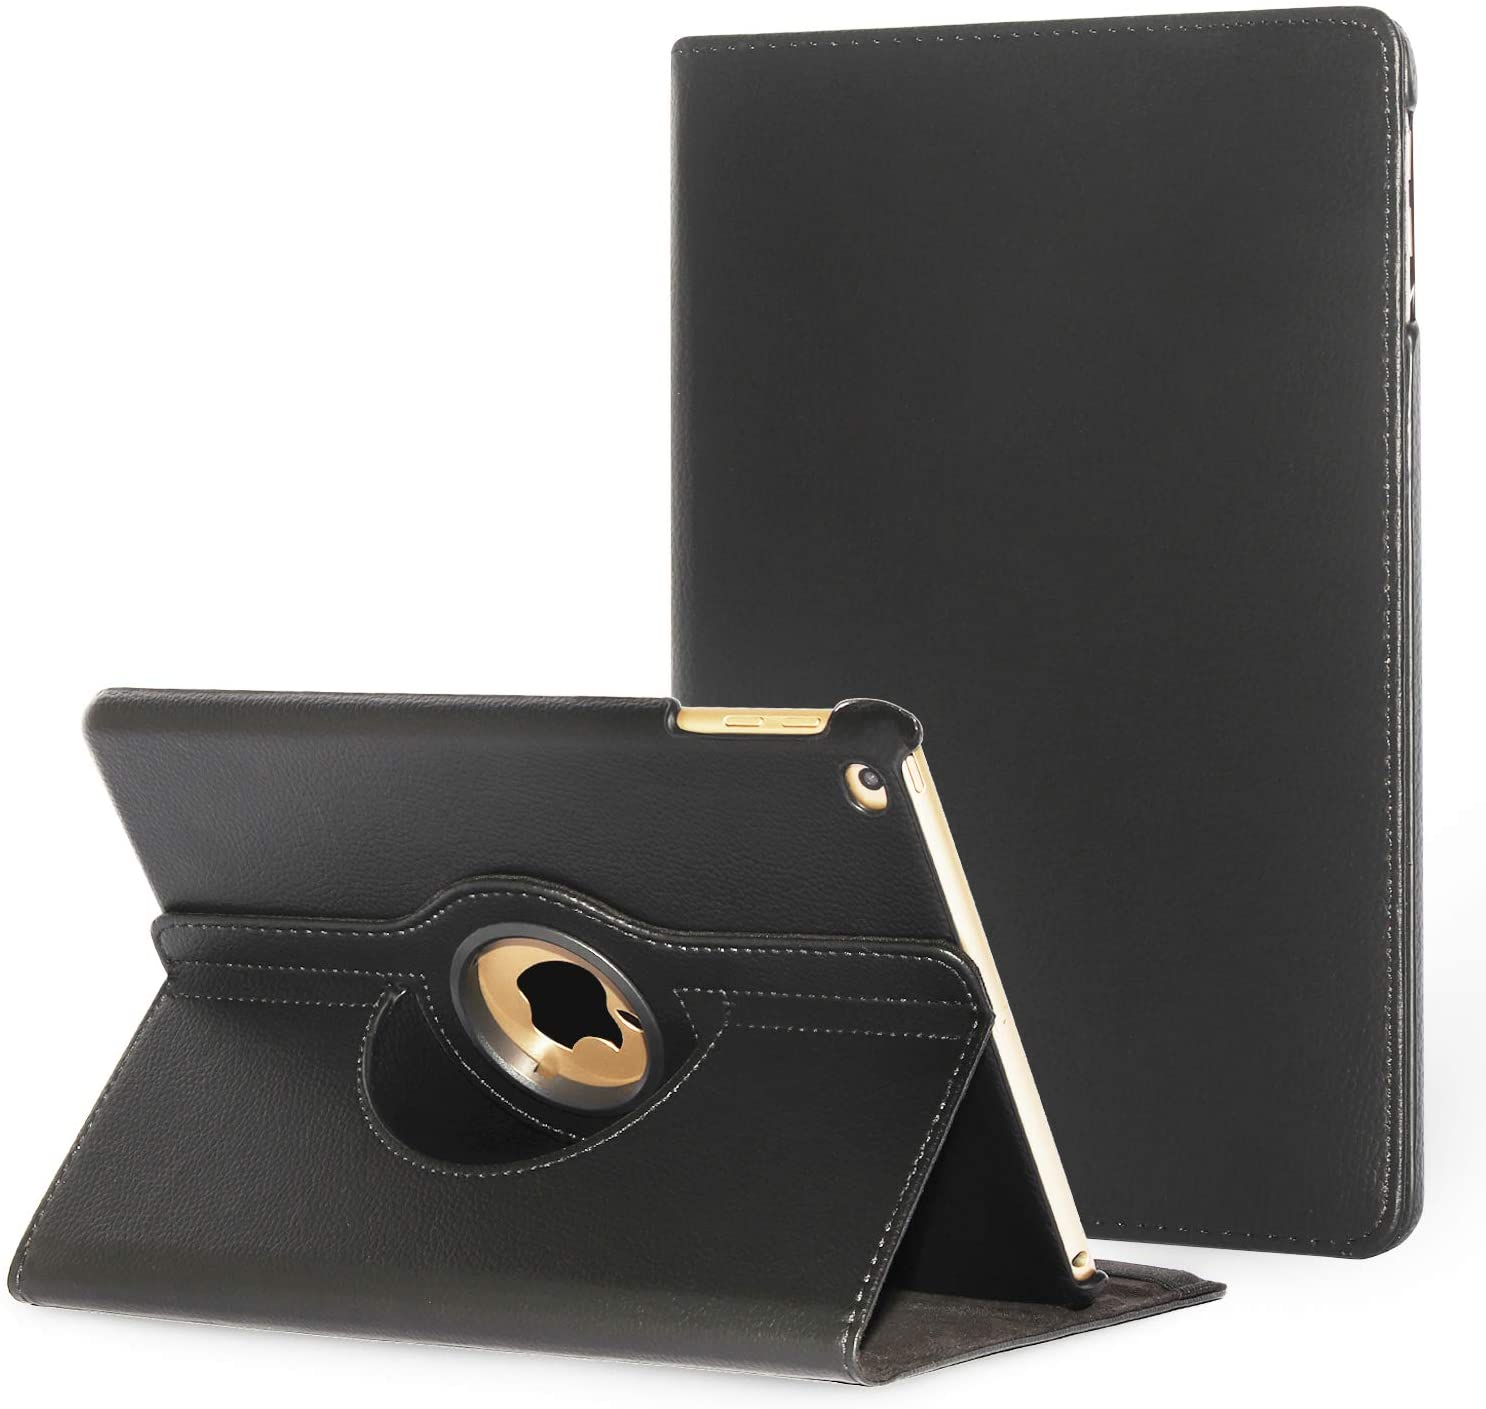 iPad Pro 9.7 2016 Case Cover,Dream Wings 360 Degrees Rotating Multi-Angle Viewing Stand Screen Protective Smart Case for Apple iPad Pro 9.7 inch 2016 Released Tablet (iPad Pro 9.7, Black)